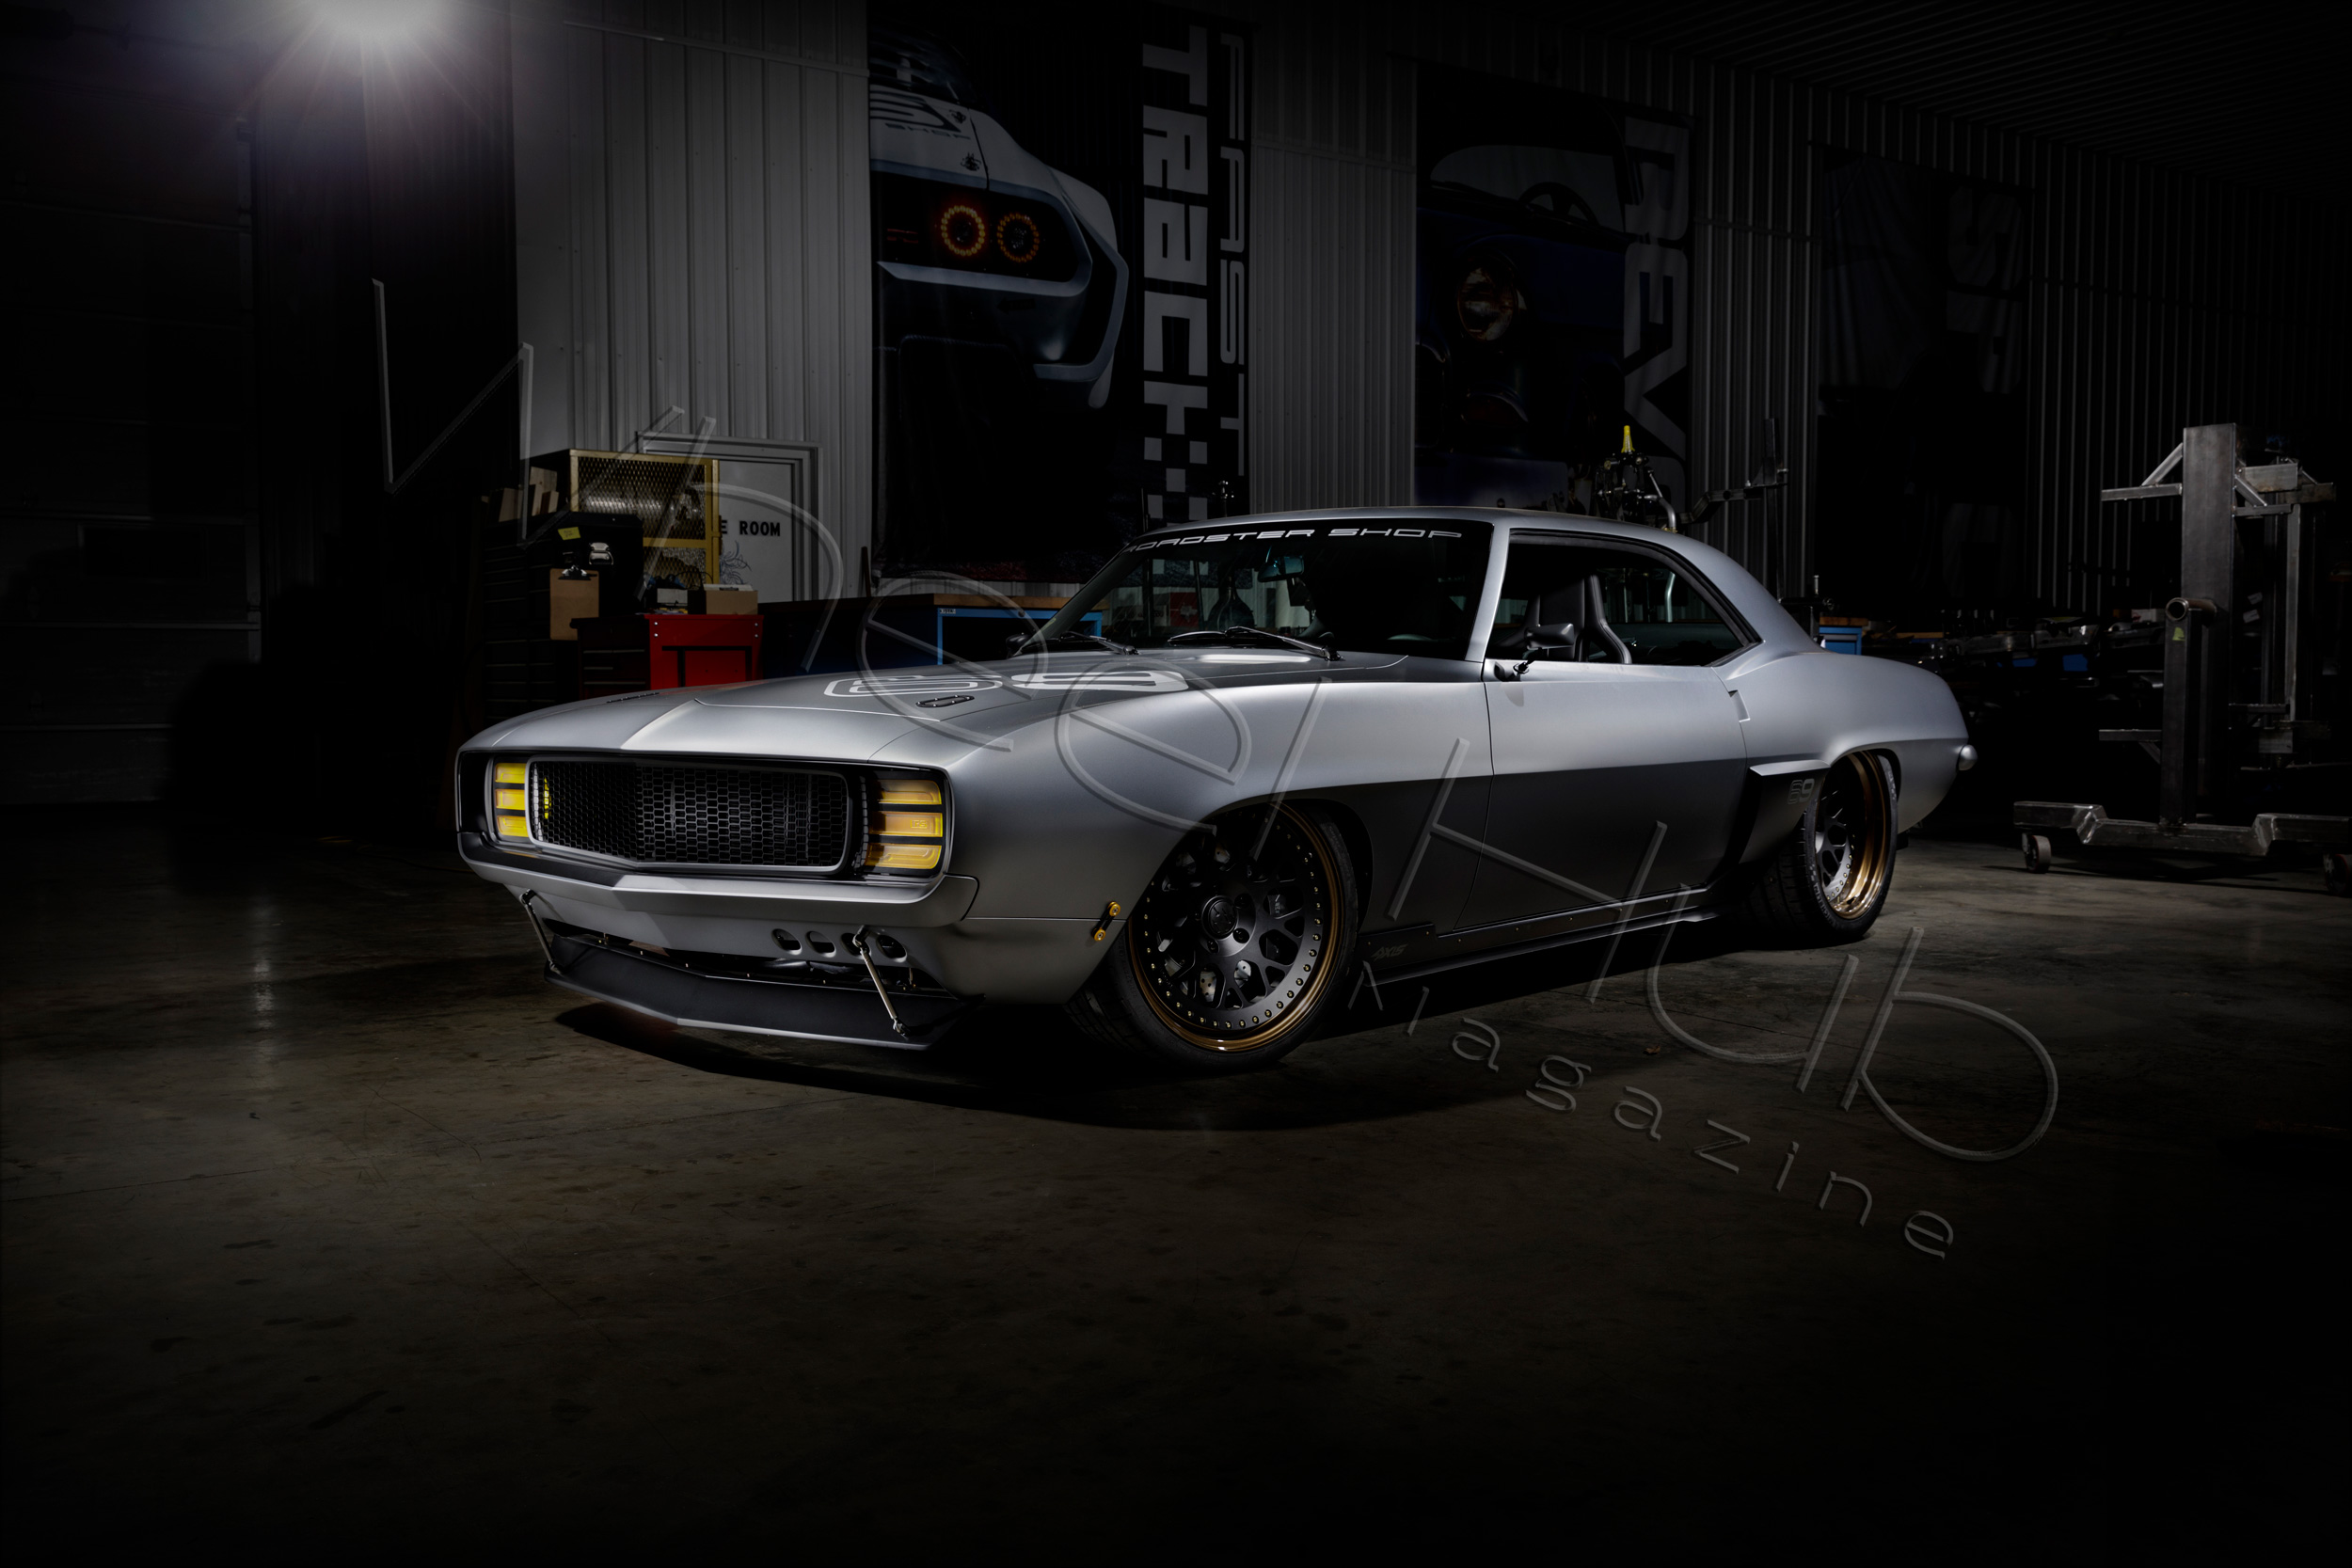 RS_Axis_69Camaro_112117_0595-2.jpg